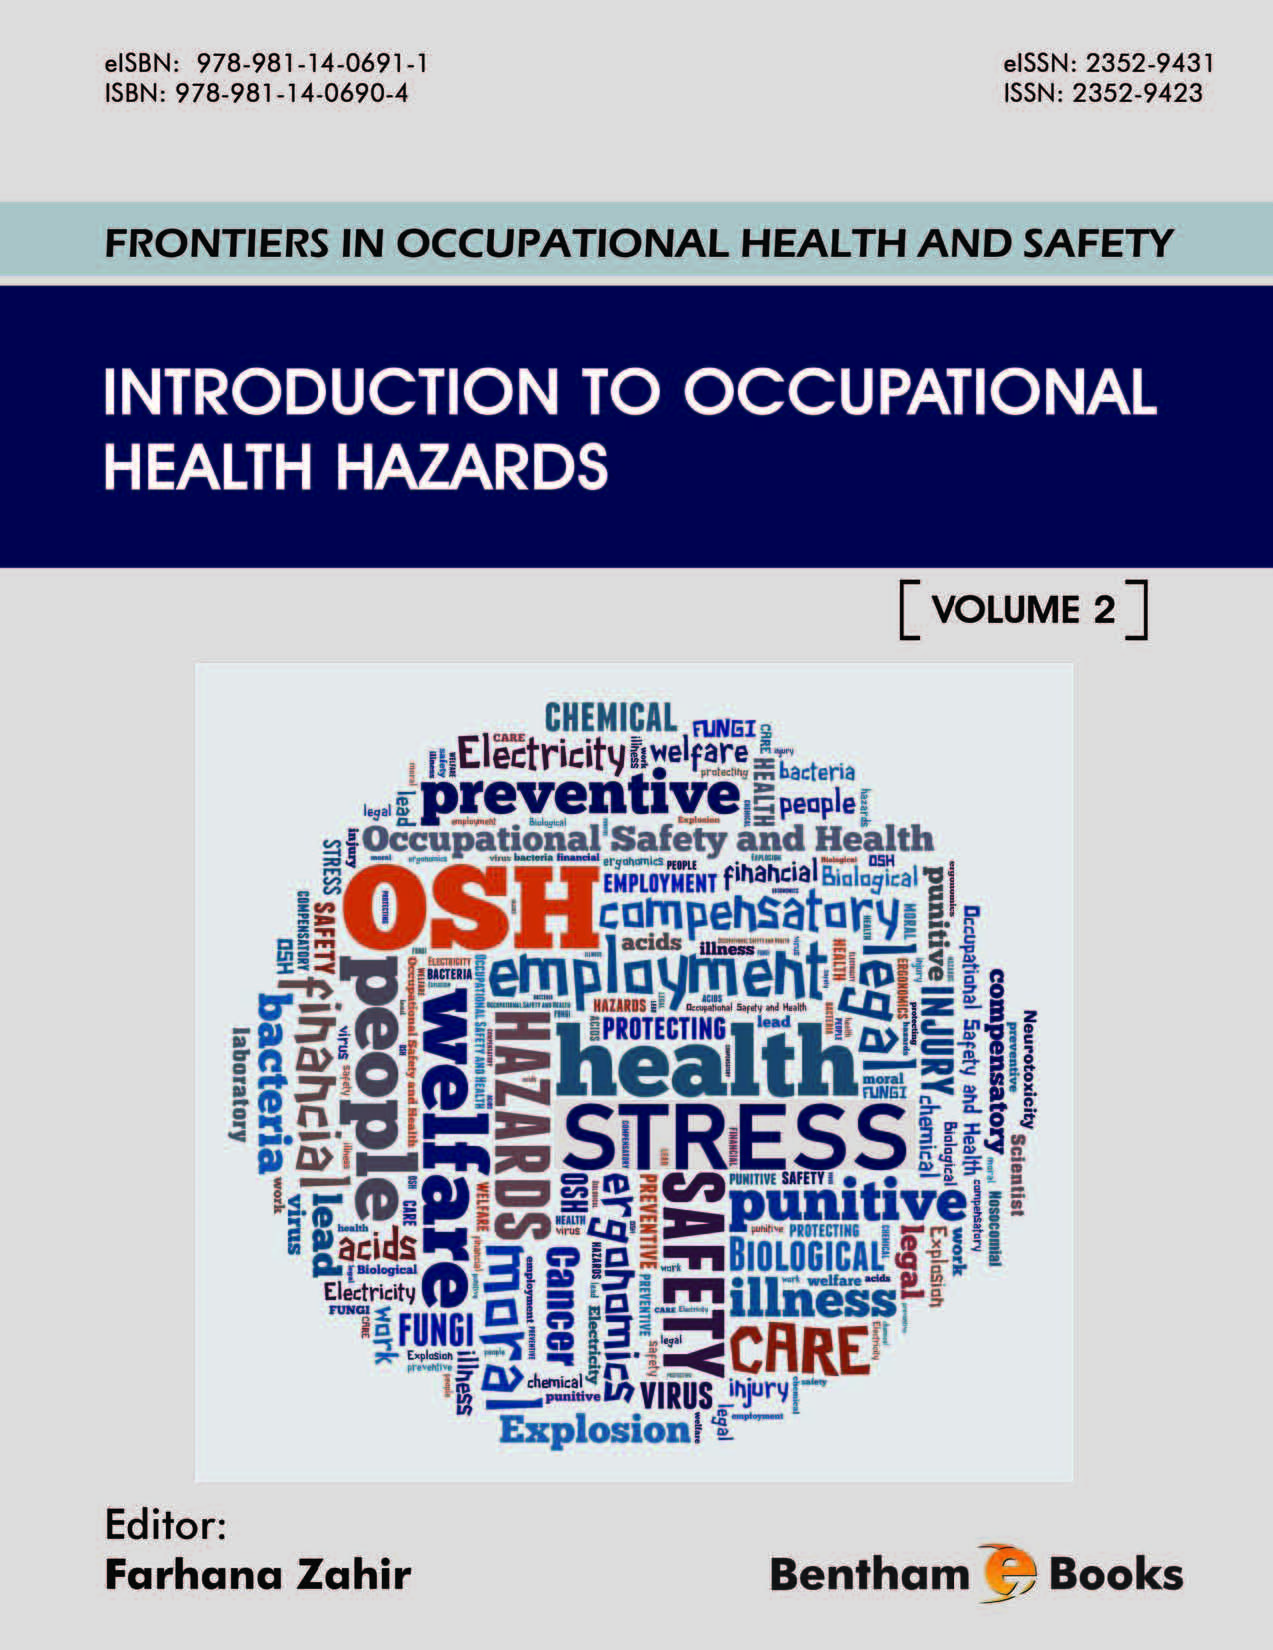 Introduction to Occupational Health Hazards